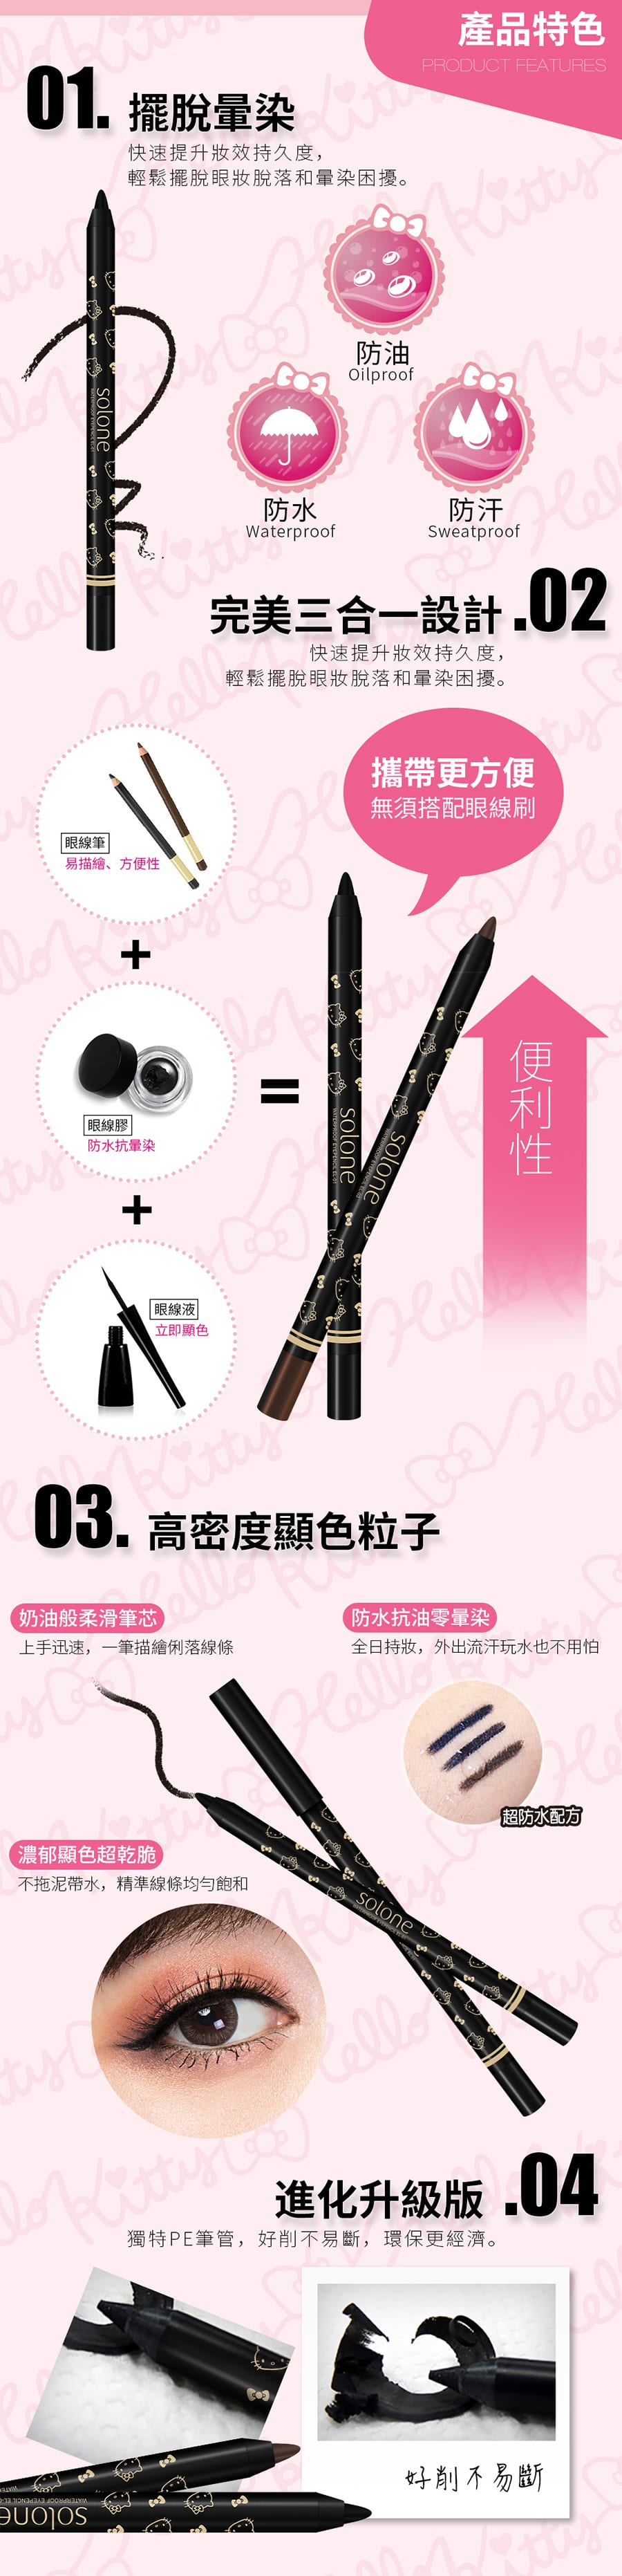 Solone Hello Kitty EyePencil - Product features